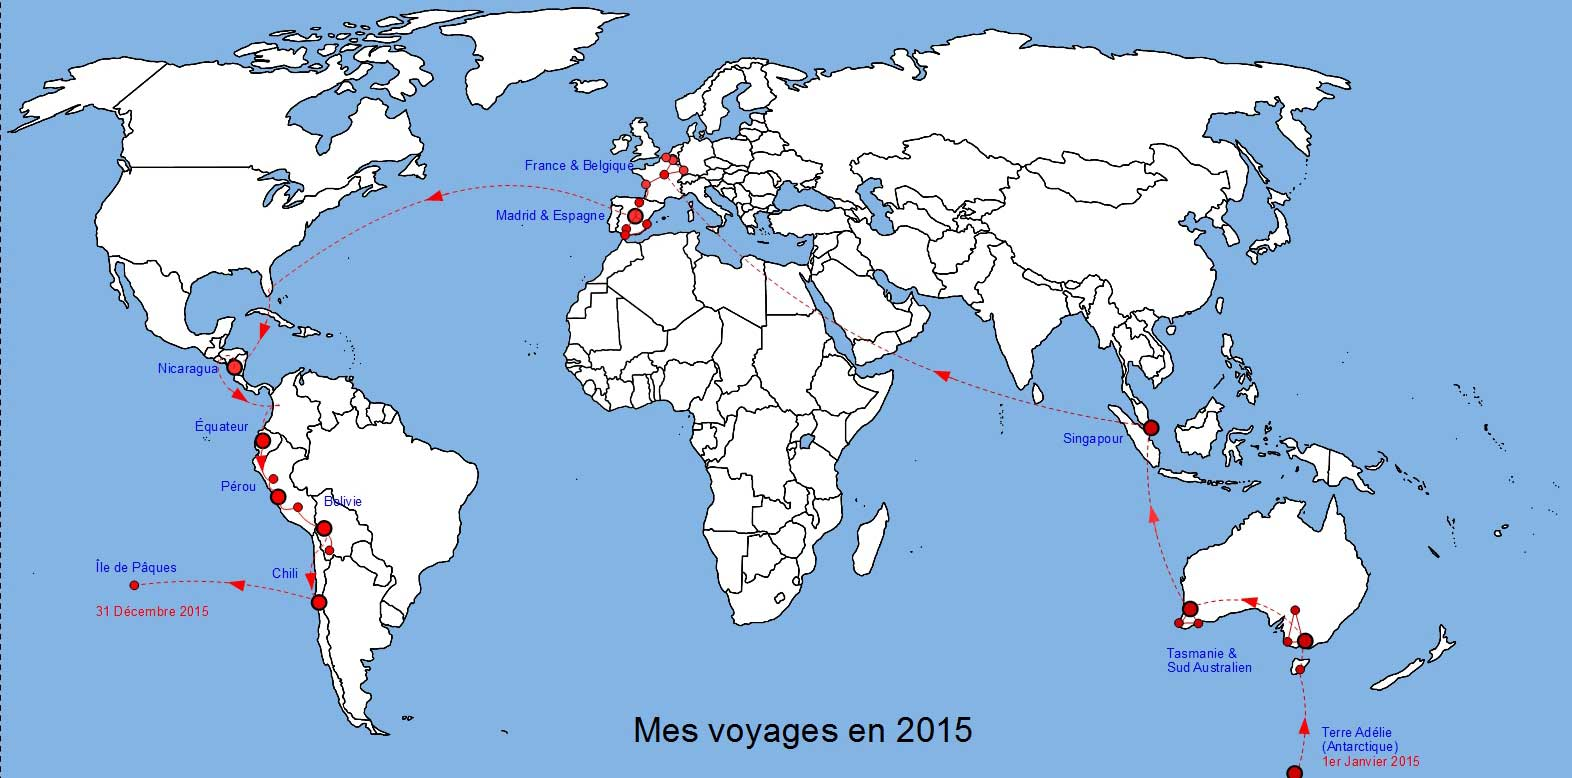 Voyages 2015